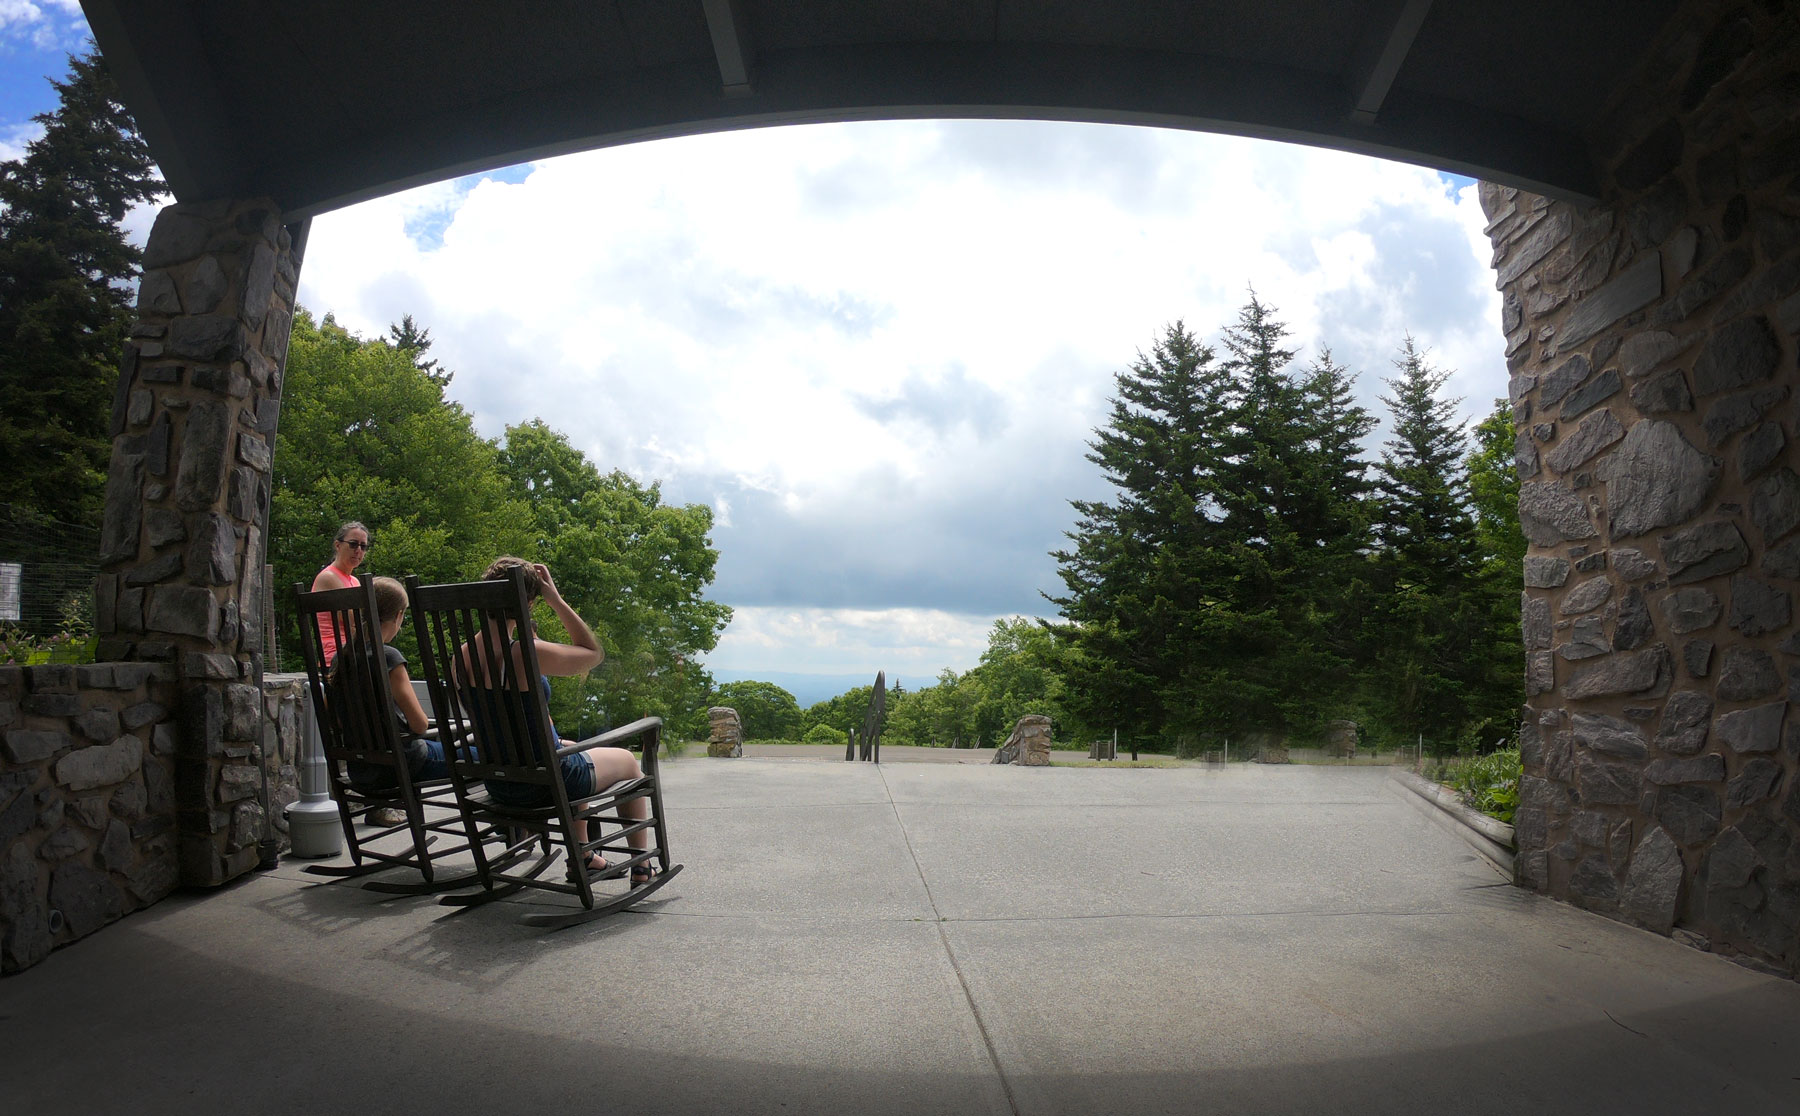 Family sitting in the rocking chairs under the shelter of the Grayson Highlands State Park, Virginia